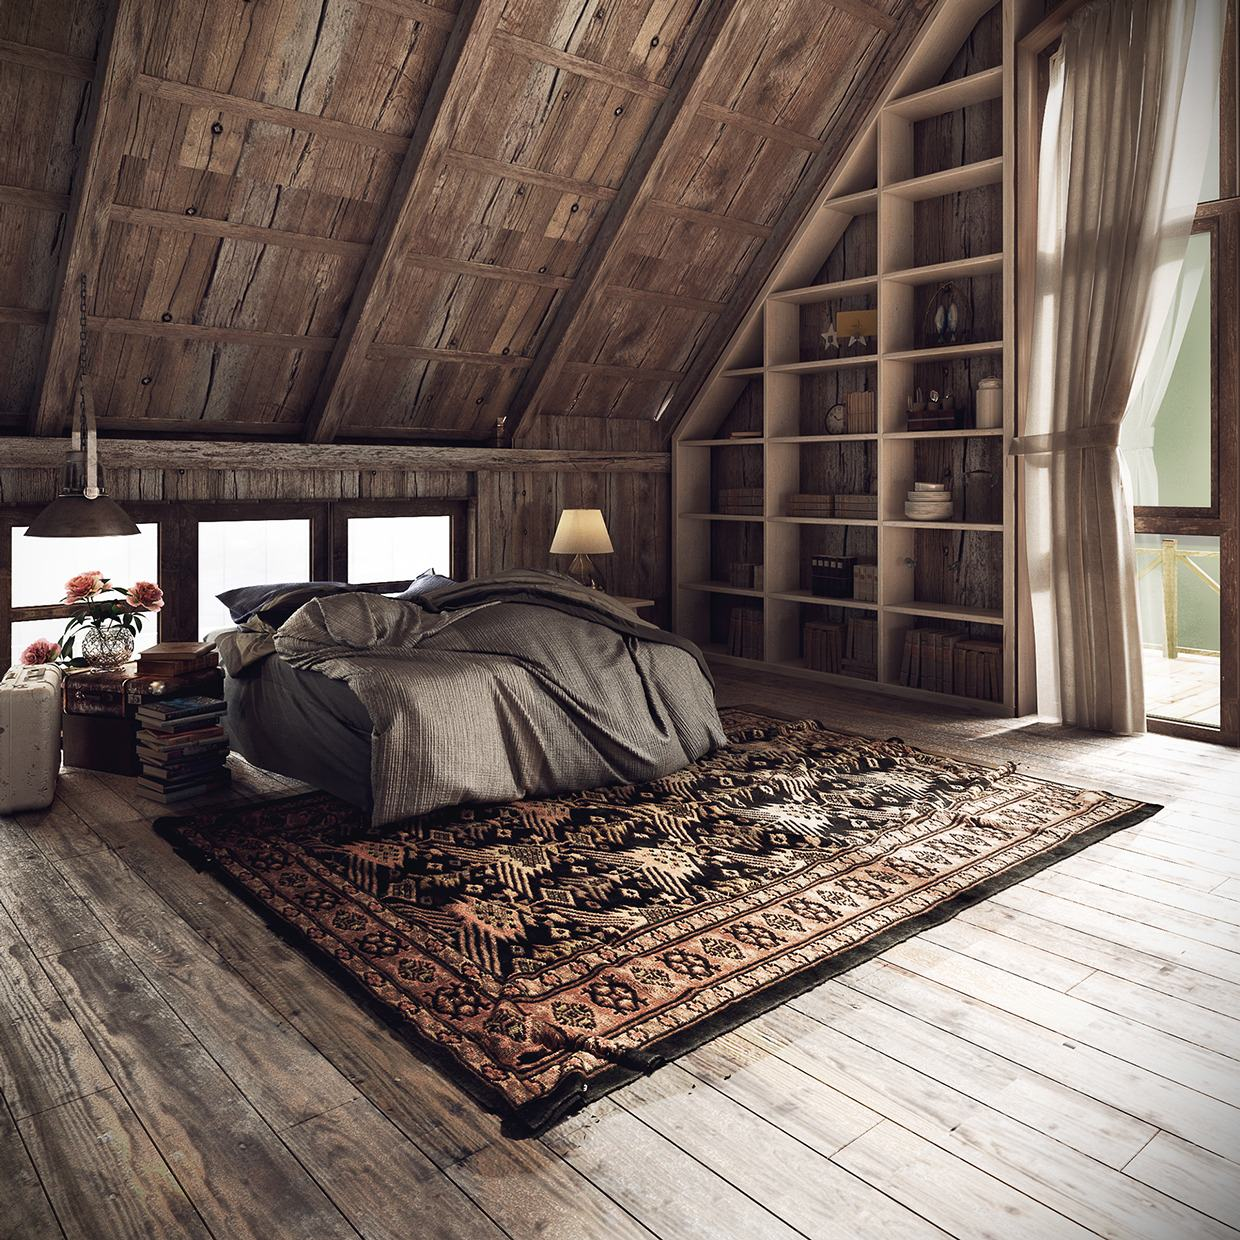 Rug Rustic Bedroom Design